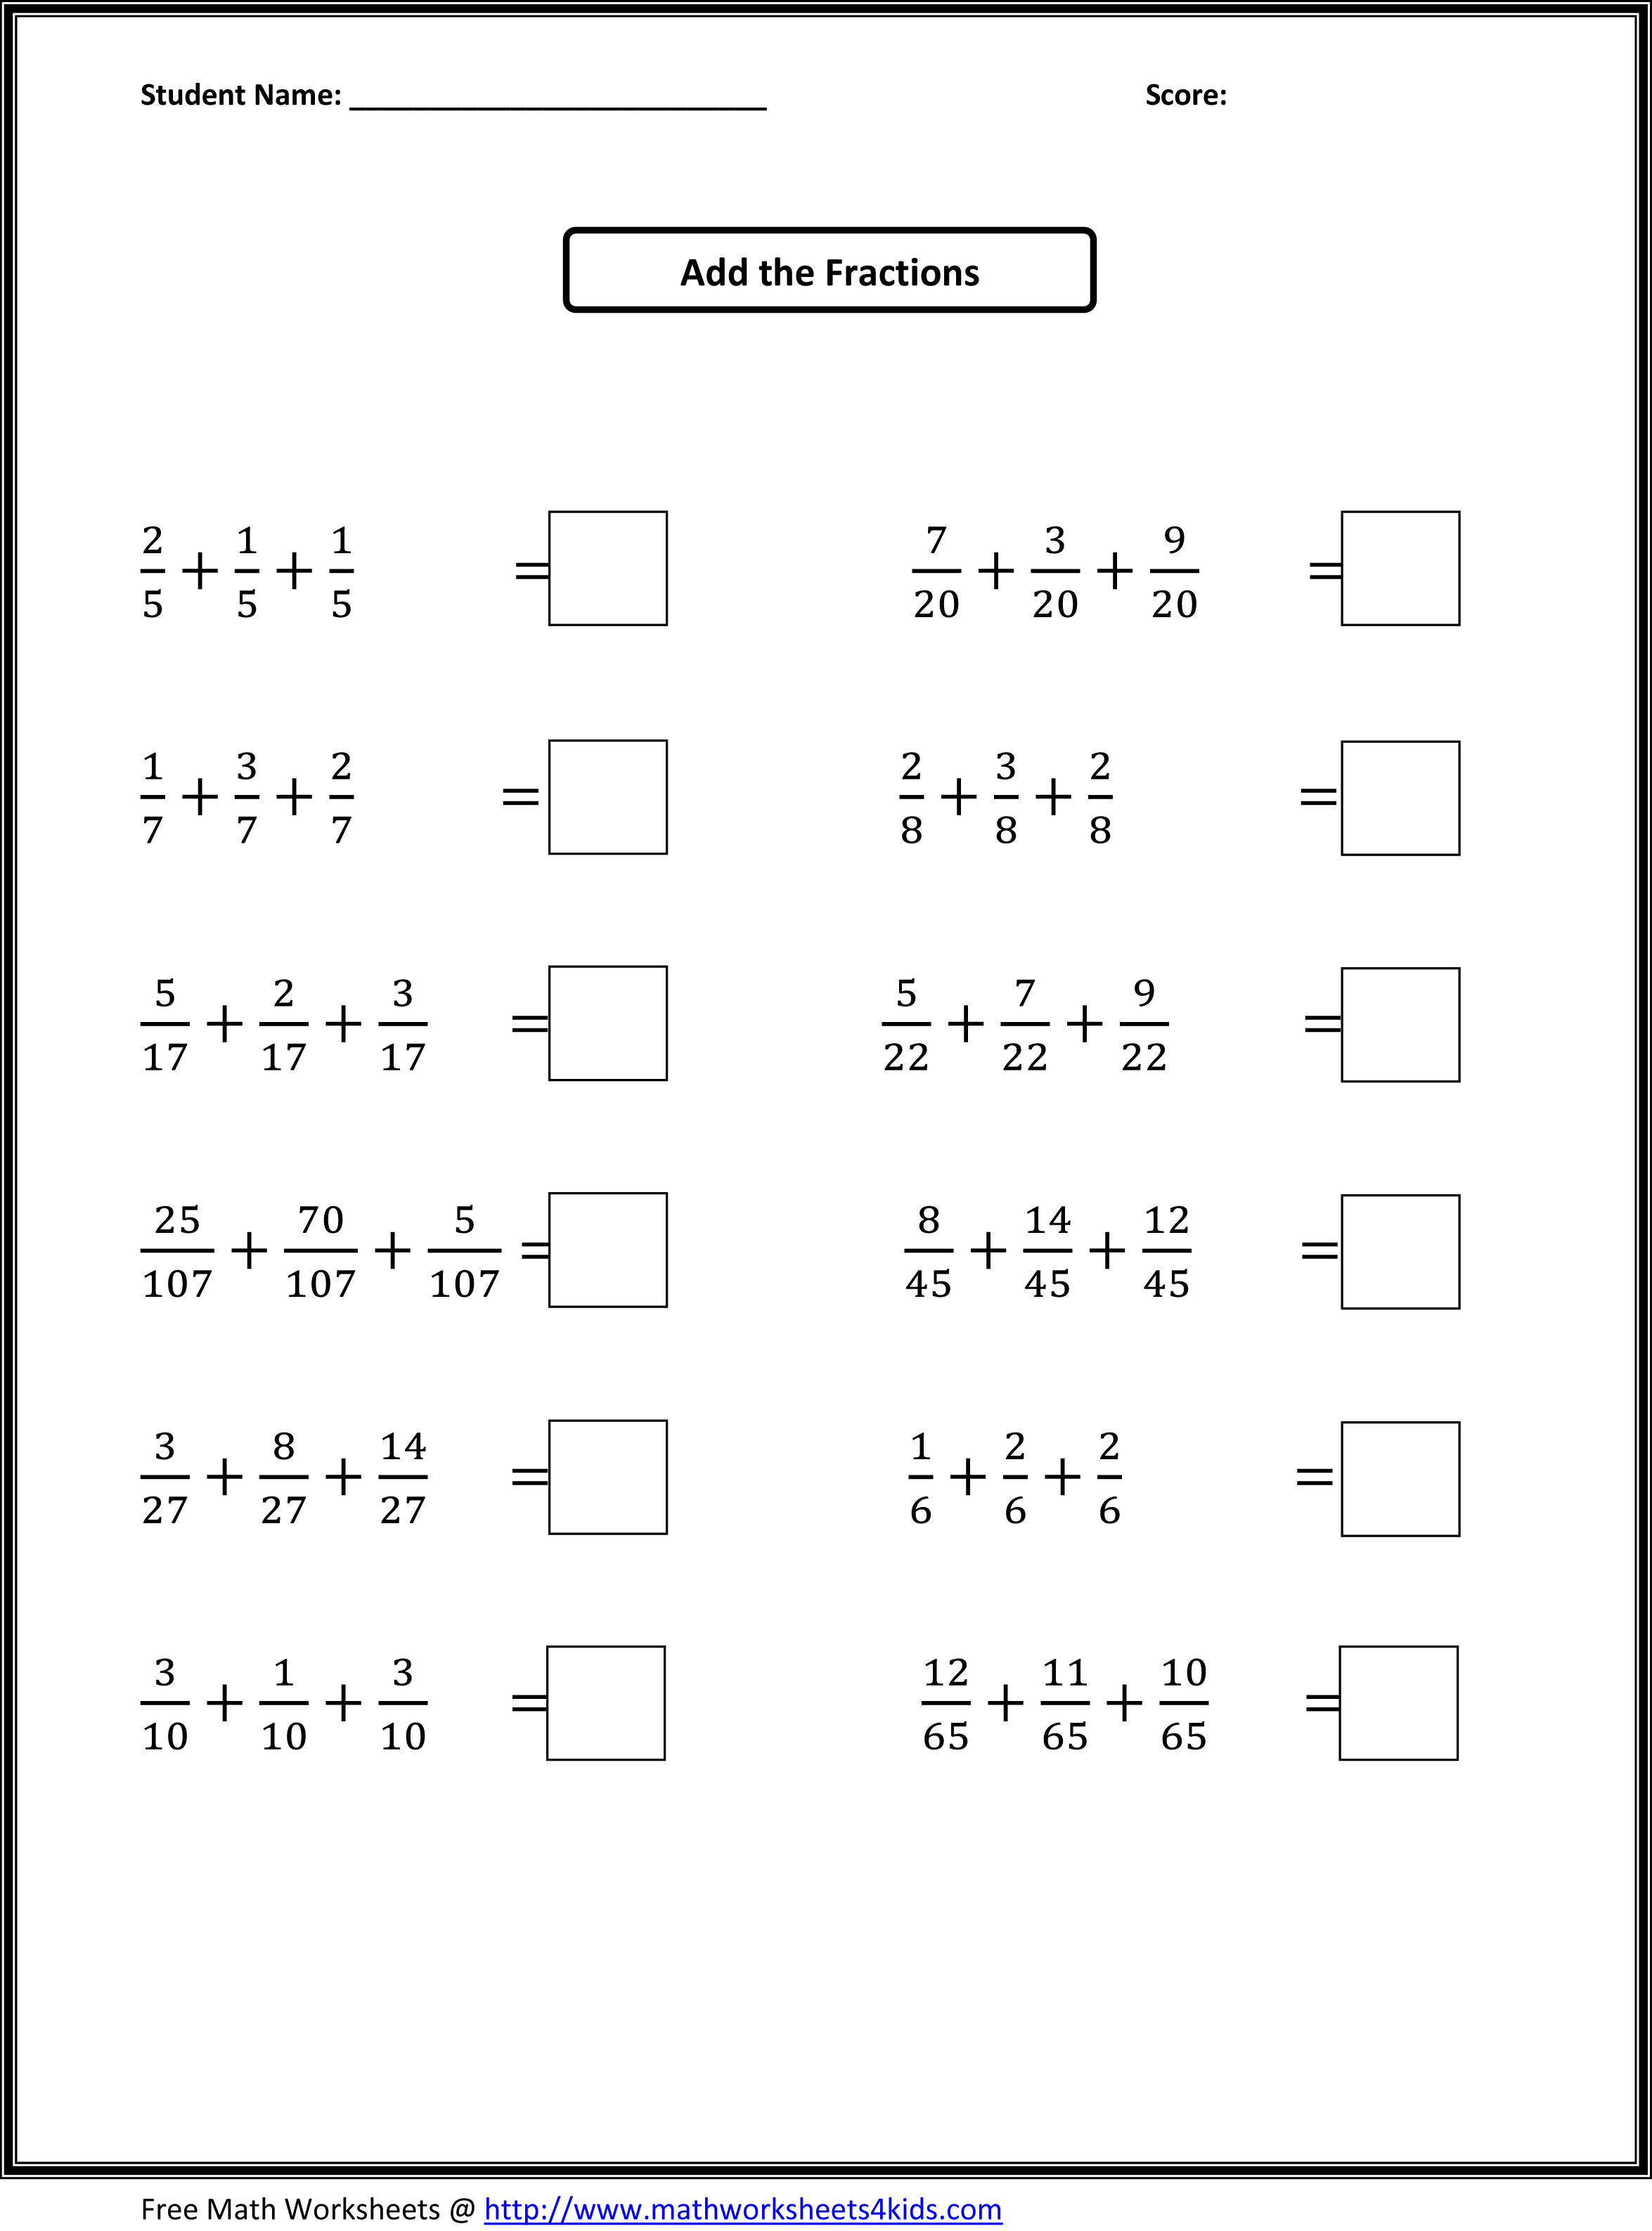 Printables Math Worksheets For Fractions 4th grade math worksheets multiplying fractions kids activities addition of worksheets